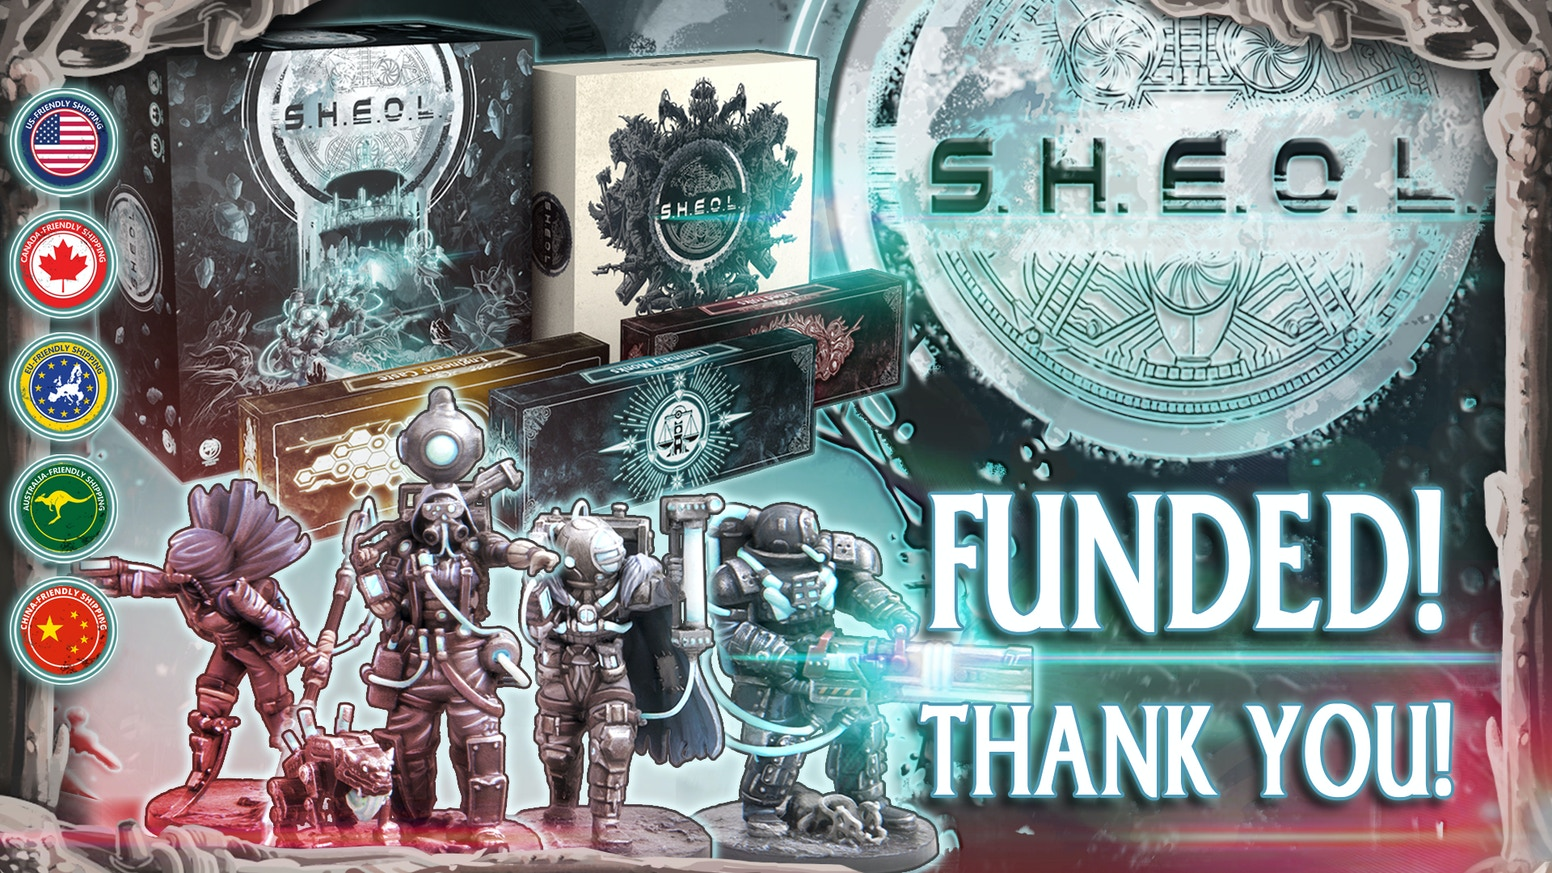 Sheol is a cooperative 1-4 player campaign game, set in a unique sci-fi world shrouded in an eternal night.